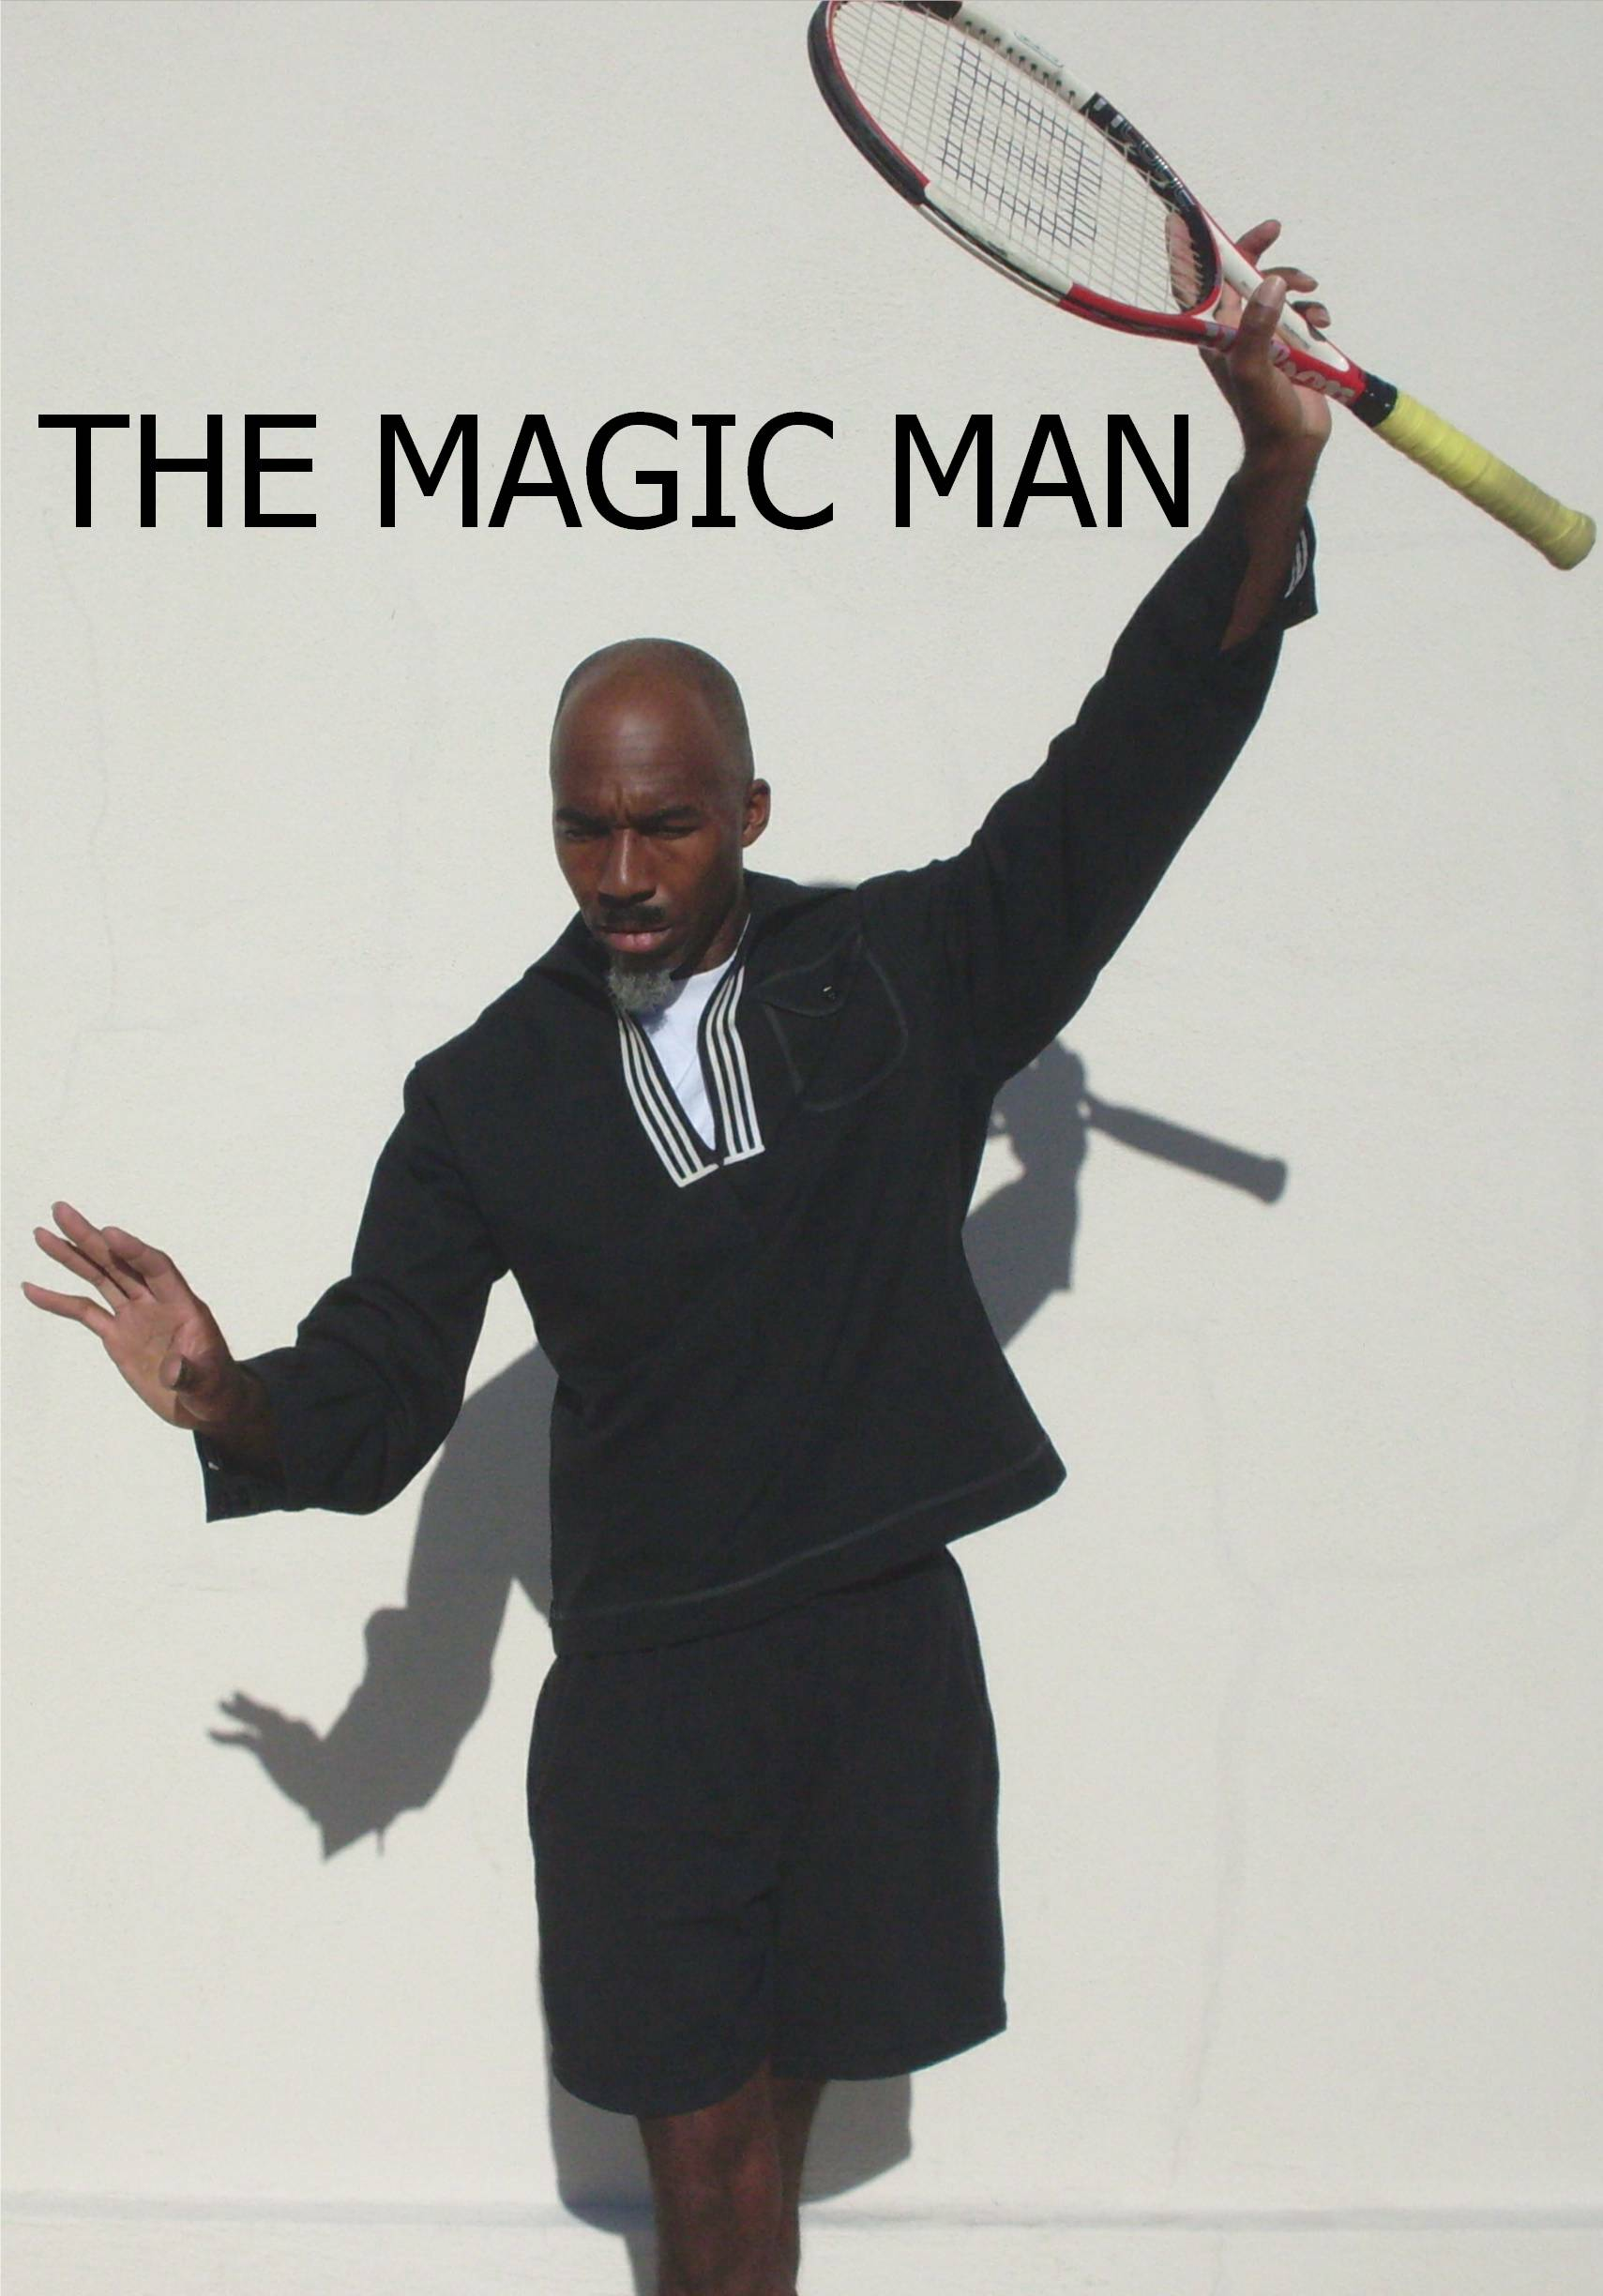 The Magic Man